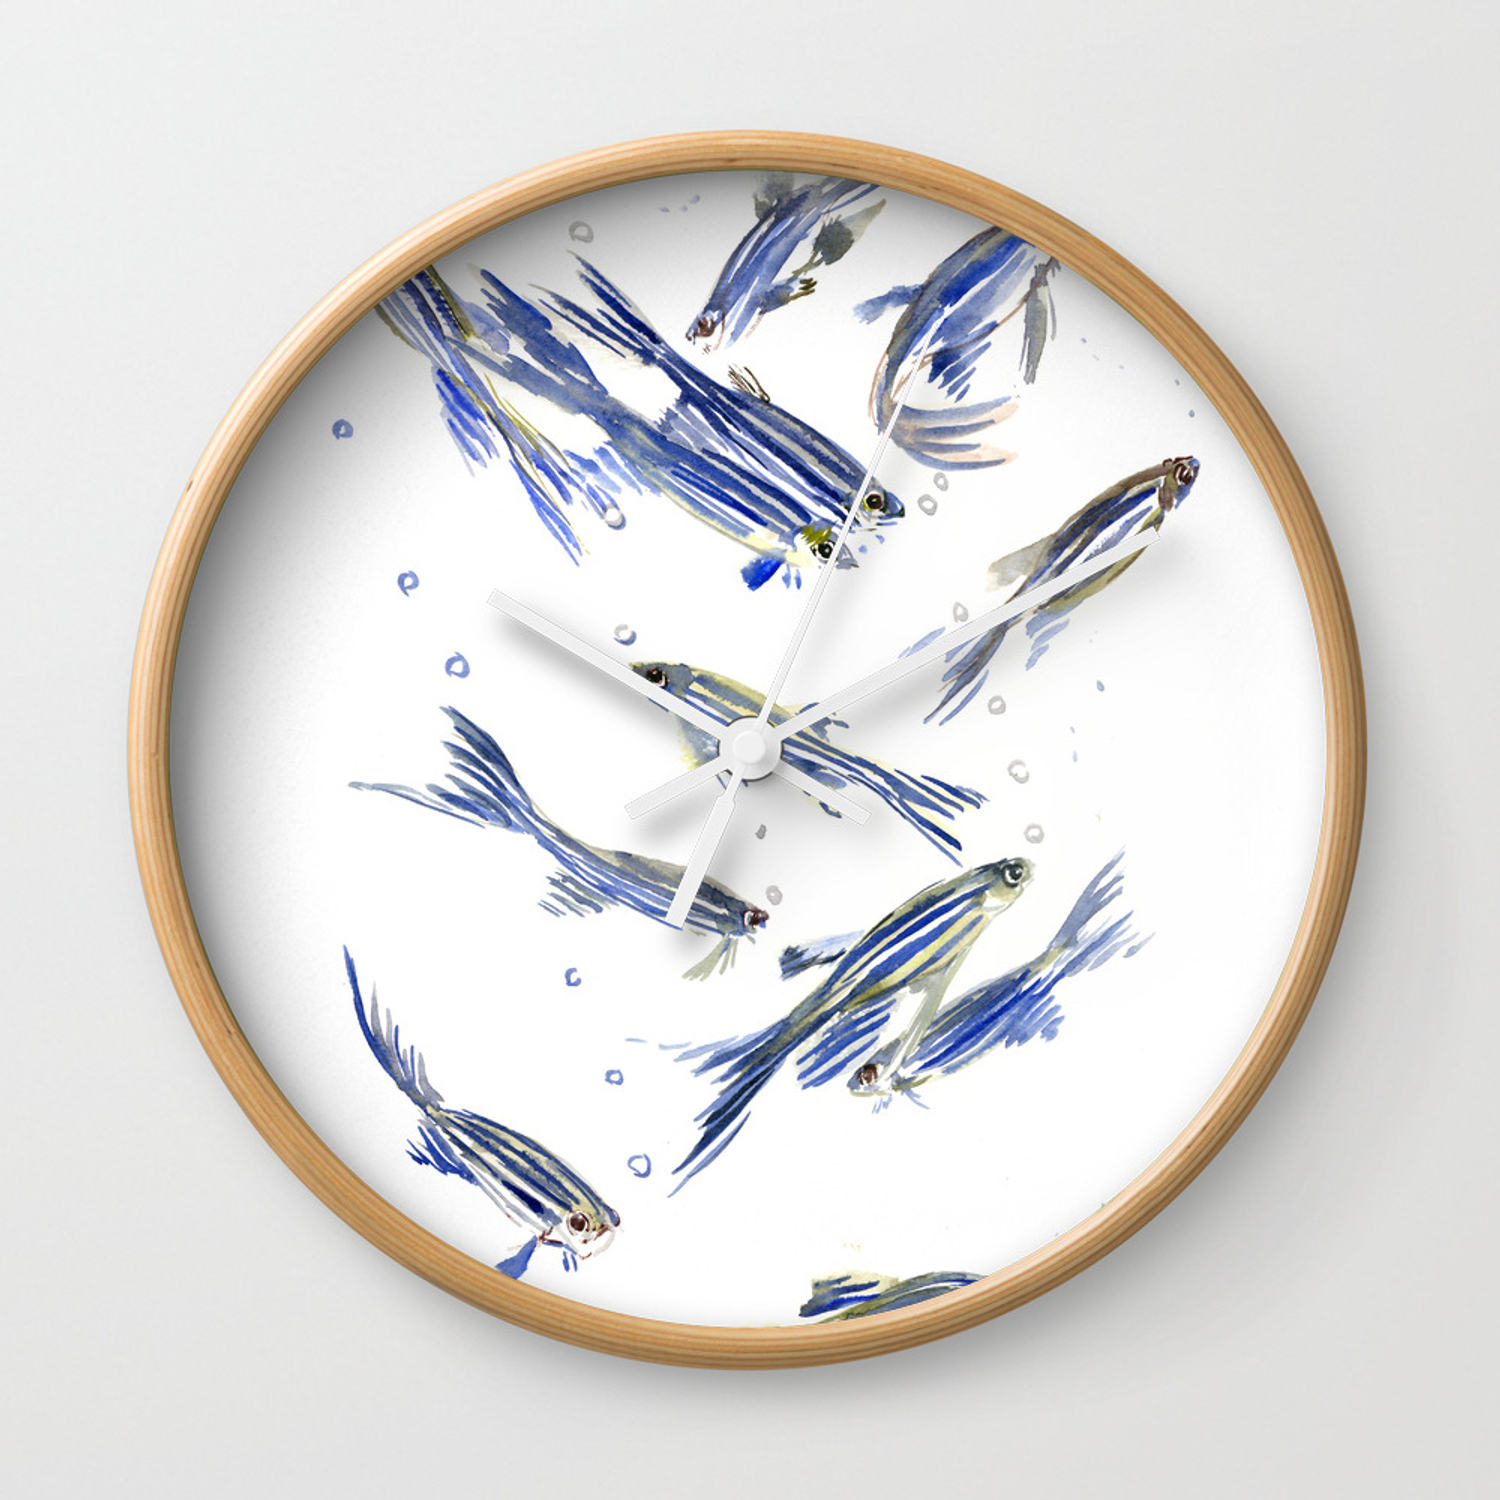 Ceramic Blue Fish Plate Wall Decor With Regard To Recent Fish Art Danio Zebra Fish, Gray Blue Aquatic Beach Home Decor Wall (Gallery 16 of 20)